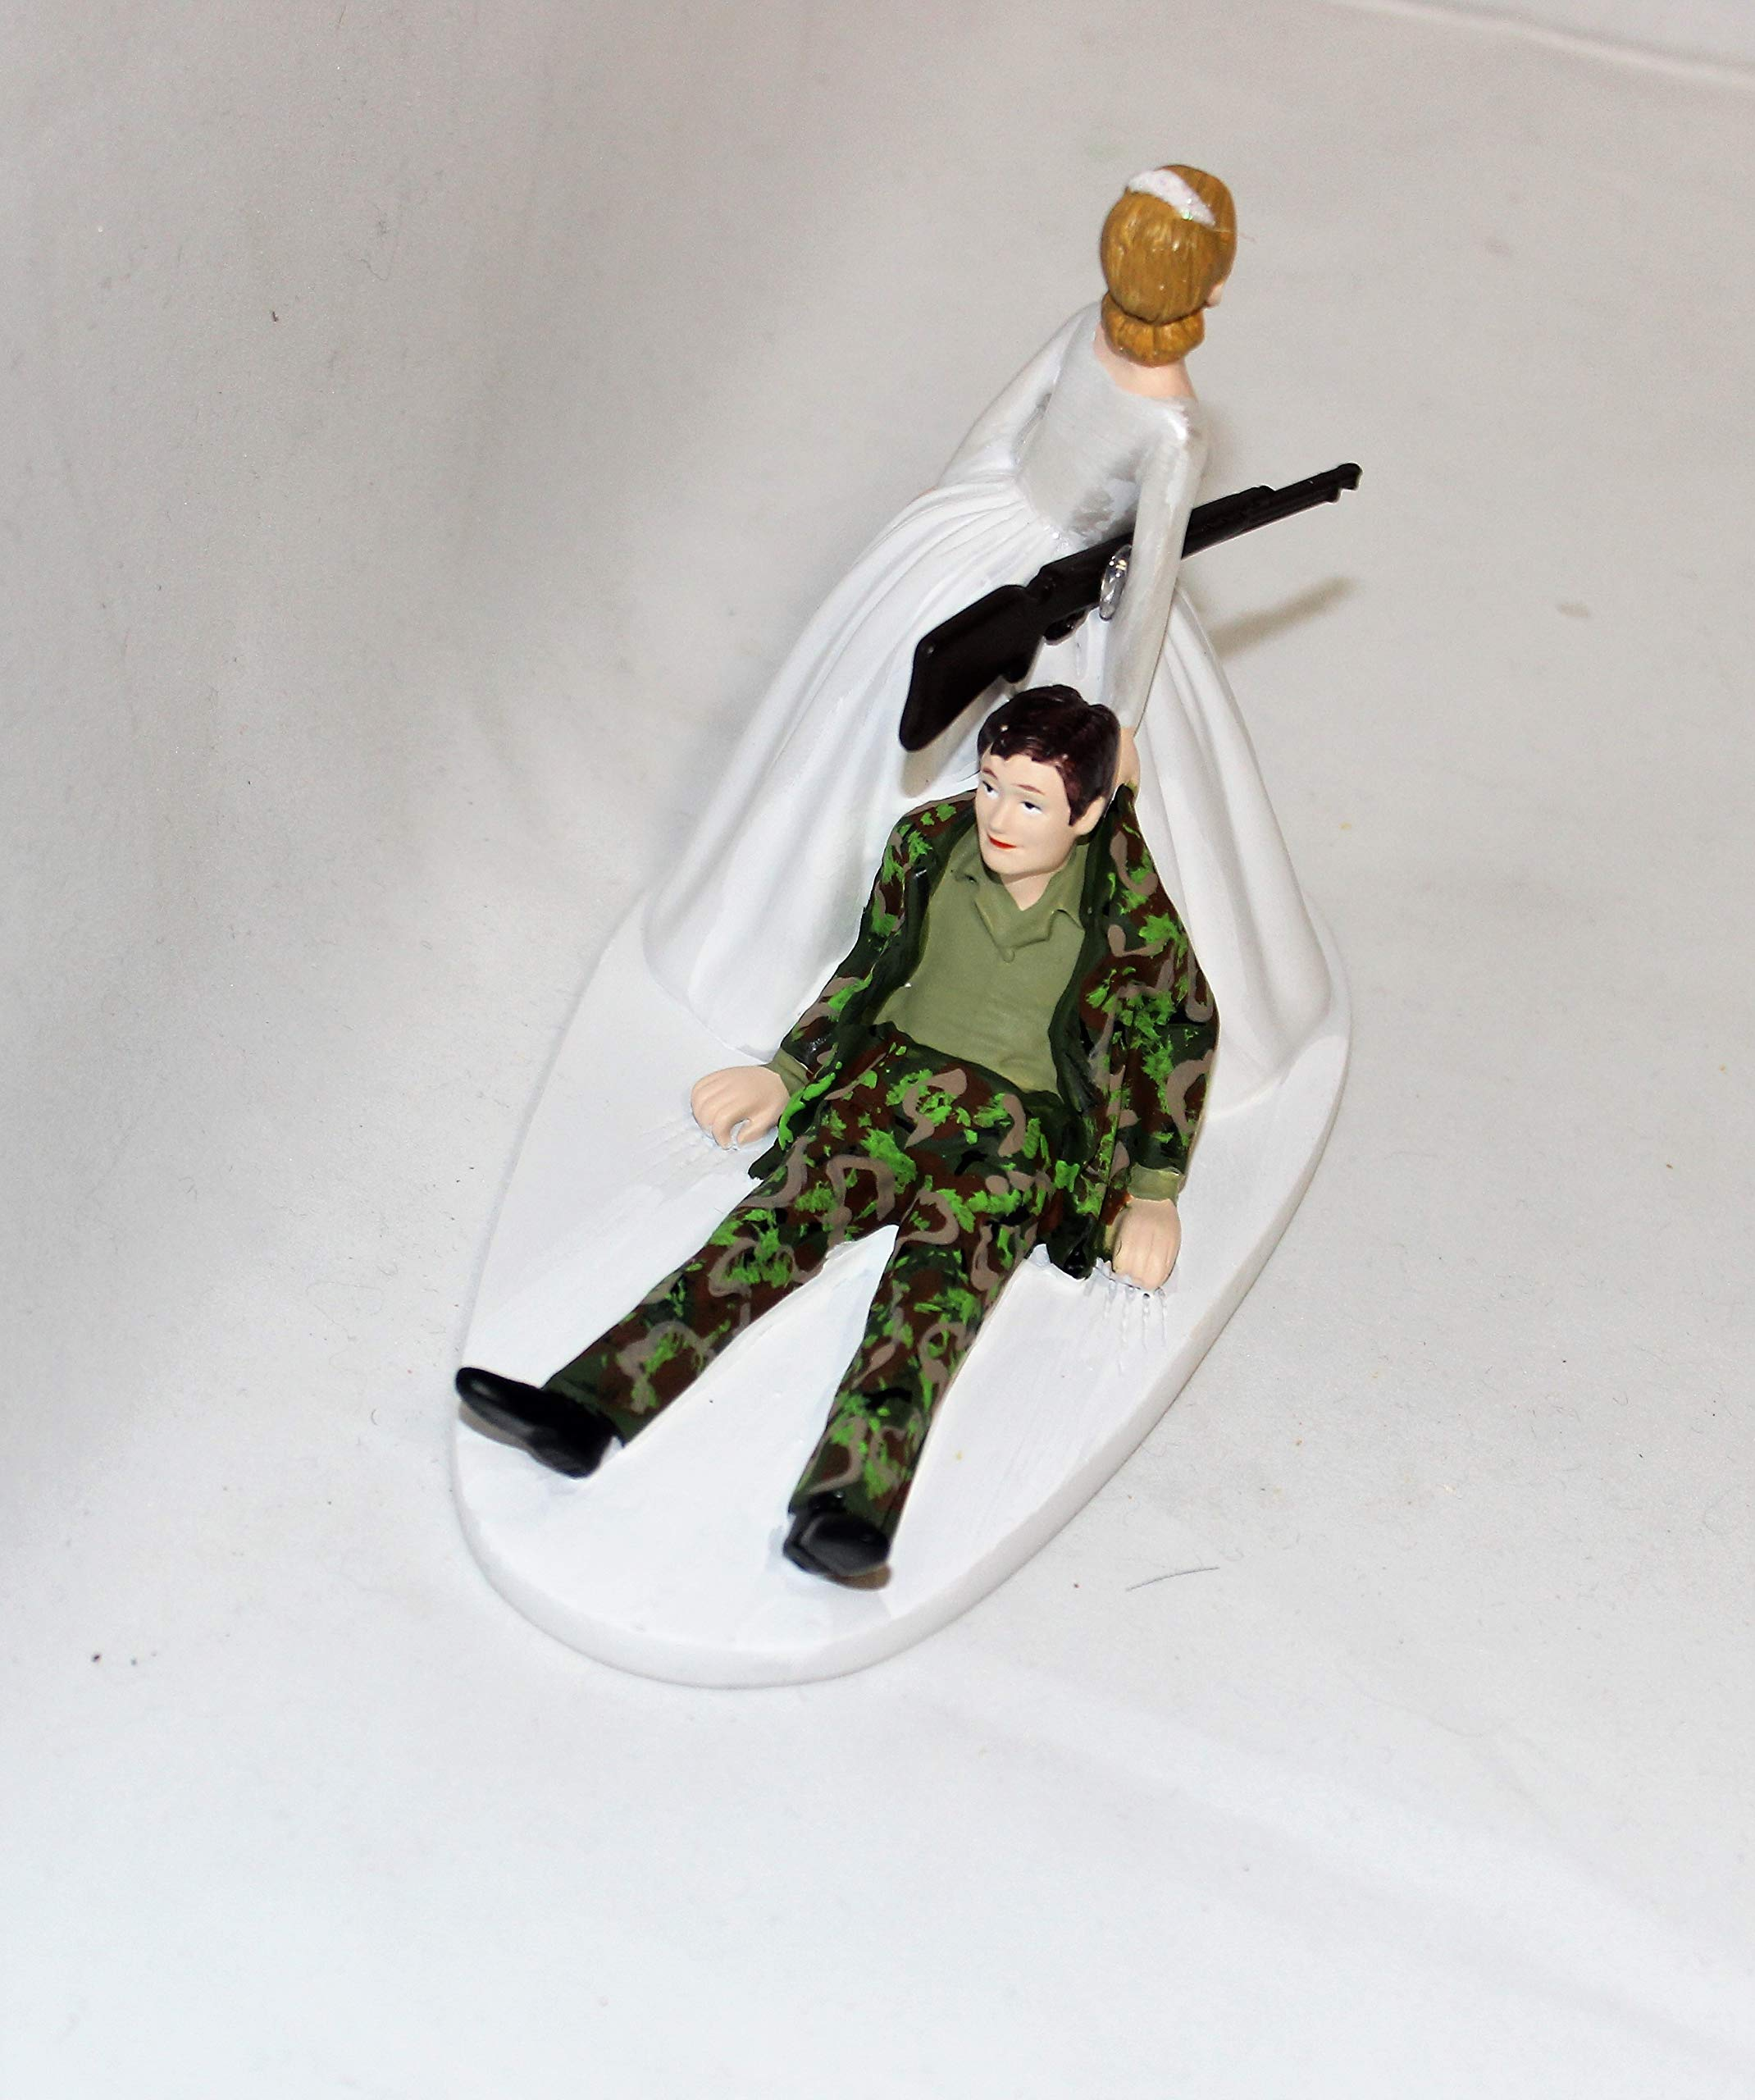 Military Camo Redneck Wedding reception party Hunter Hunting Cake Topper by Custom Design Wedding Supplies by Suzanne (Image #1)